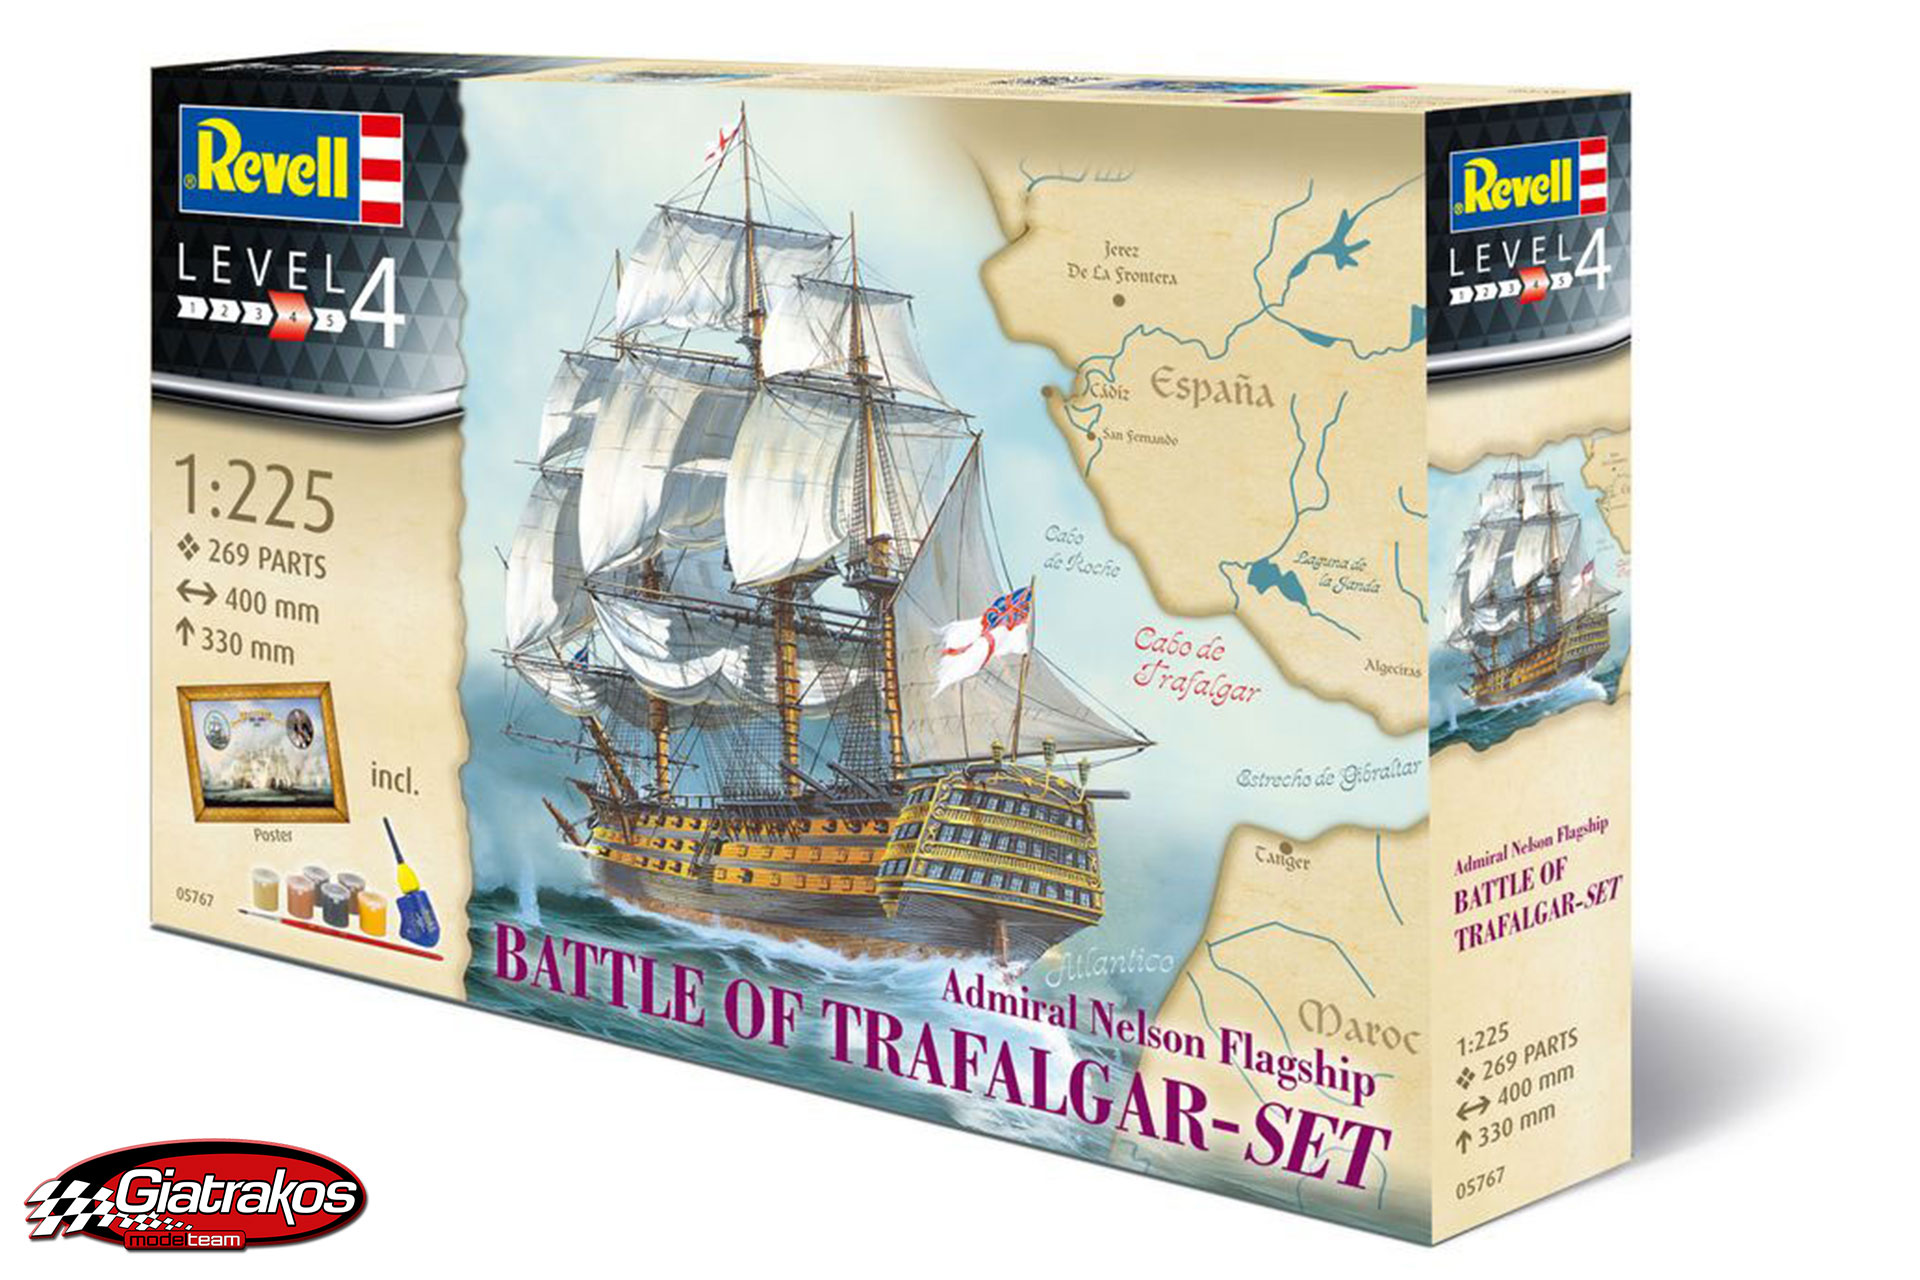 Battle of Trafalgar HMS Victory (05767)